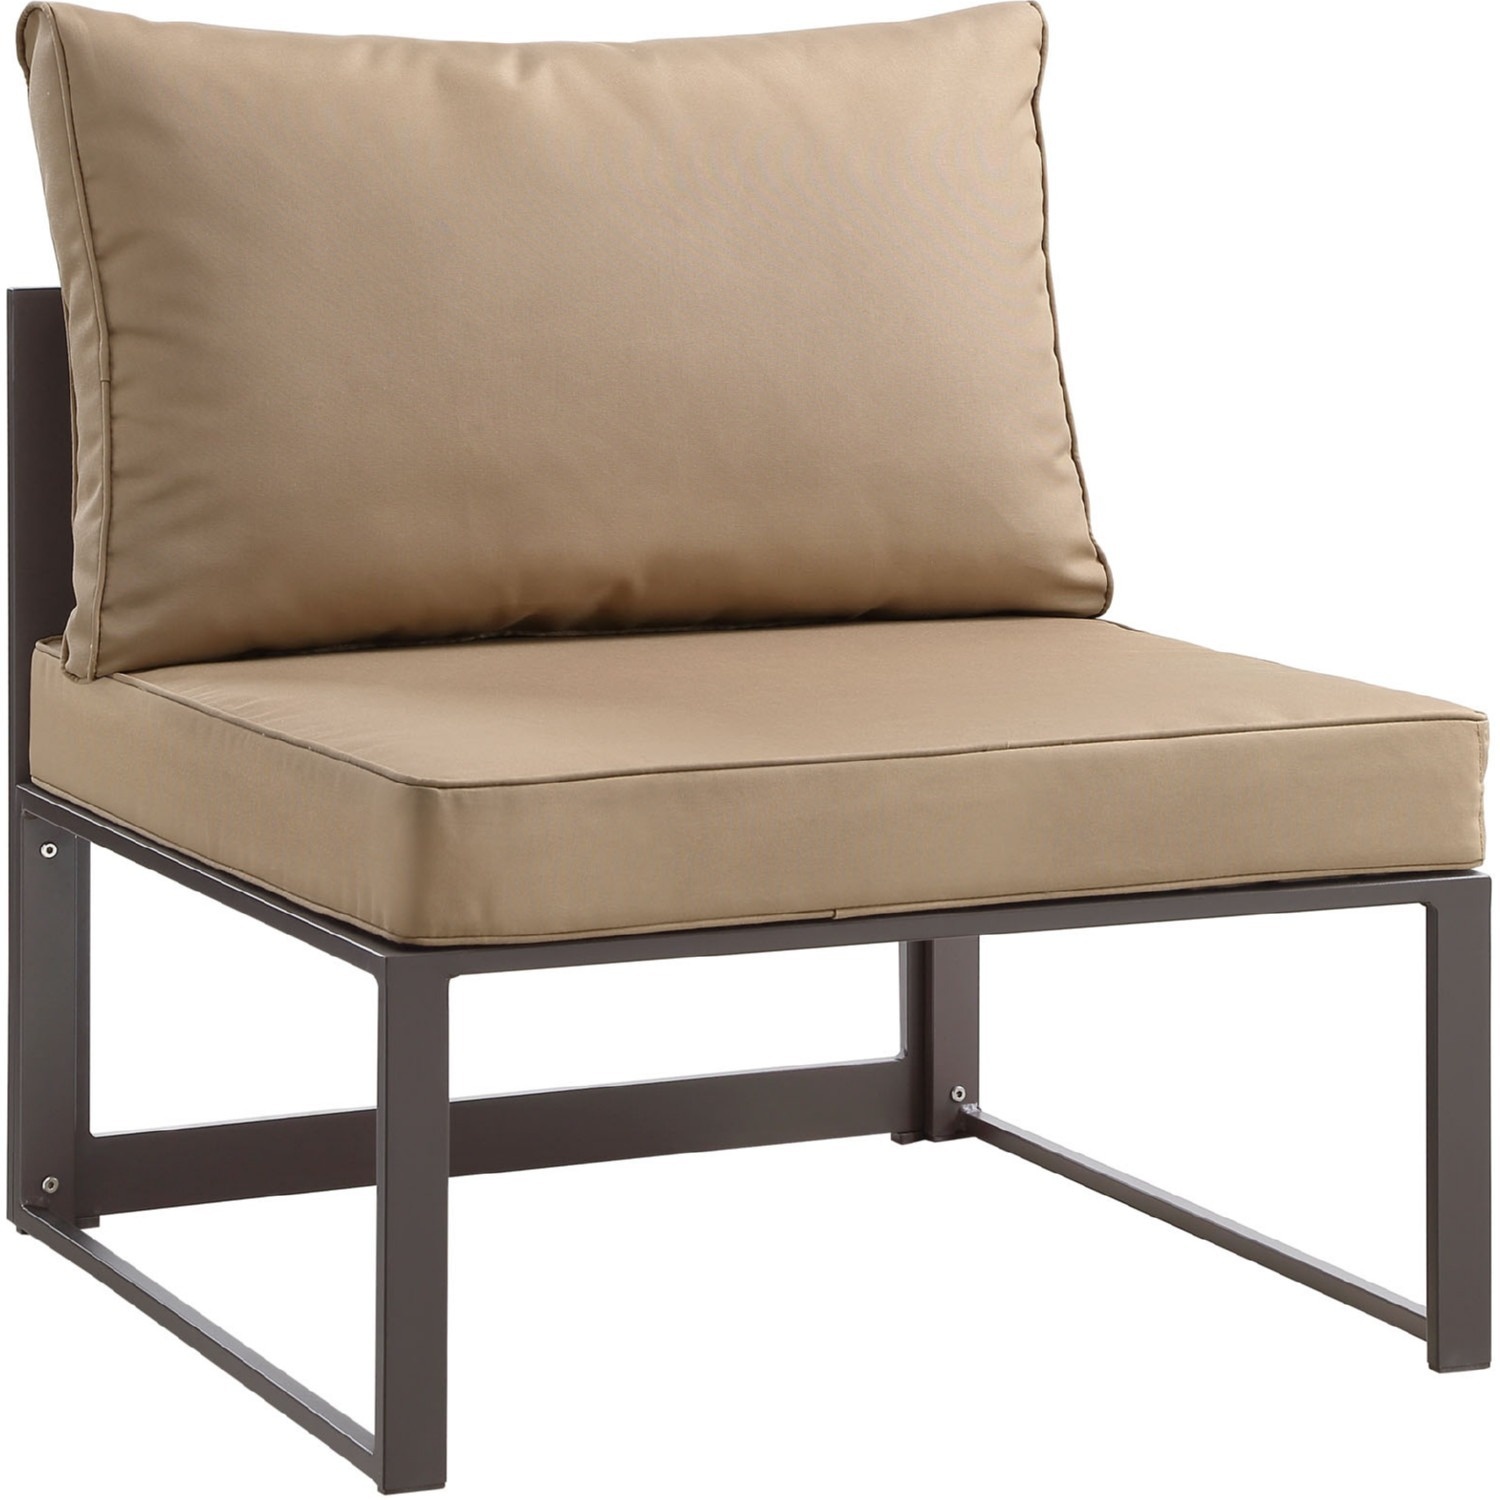 7-Piece Outdoor Sectional In Mocha & Brown Finish - image-5